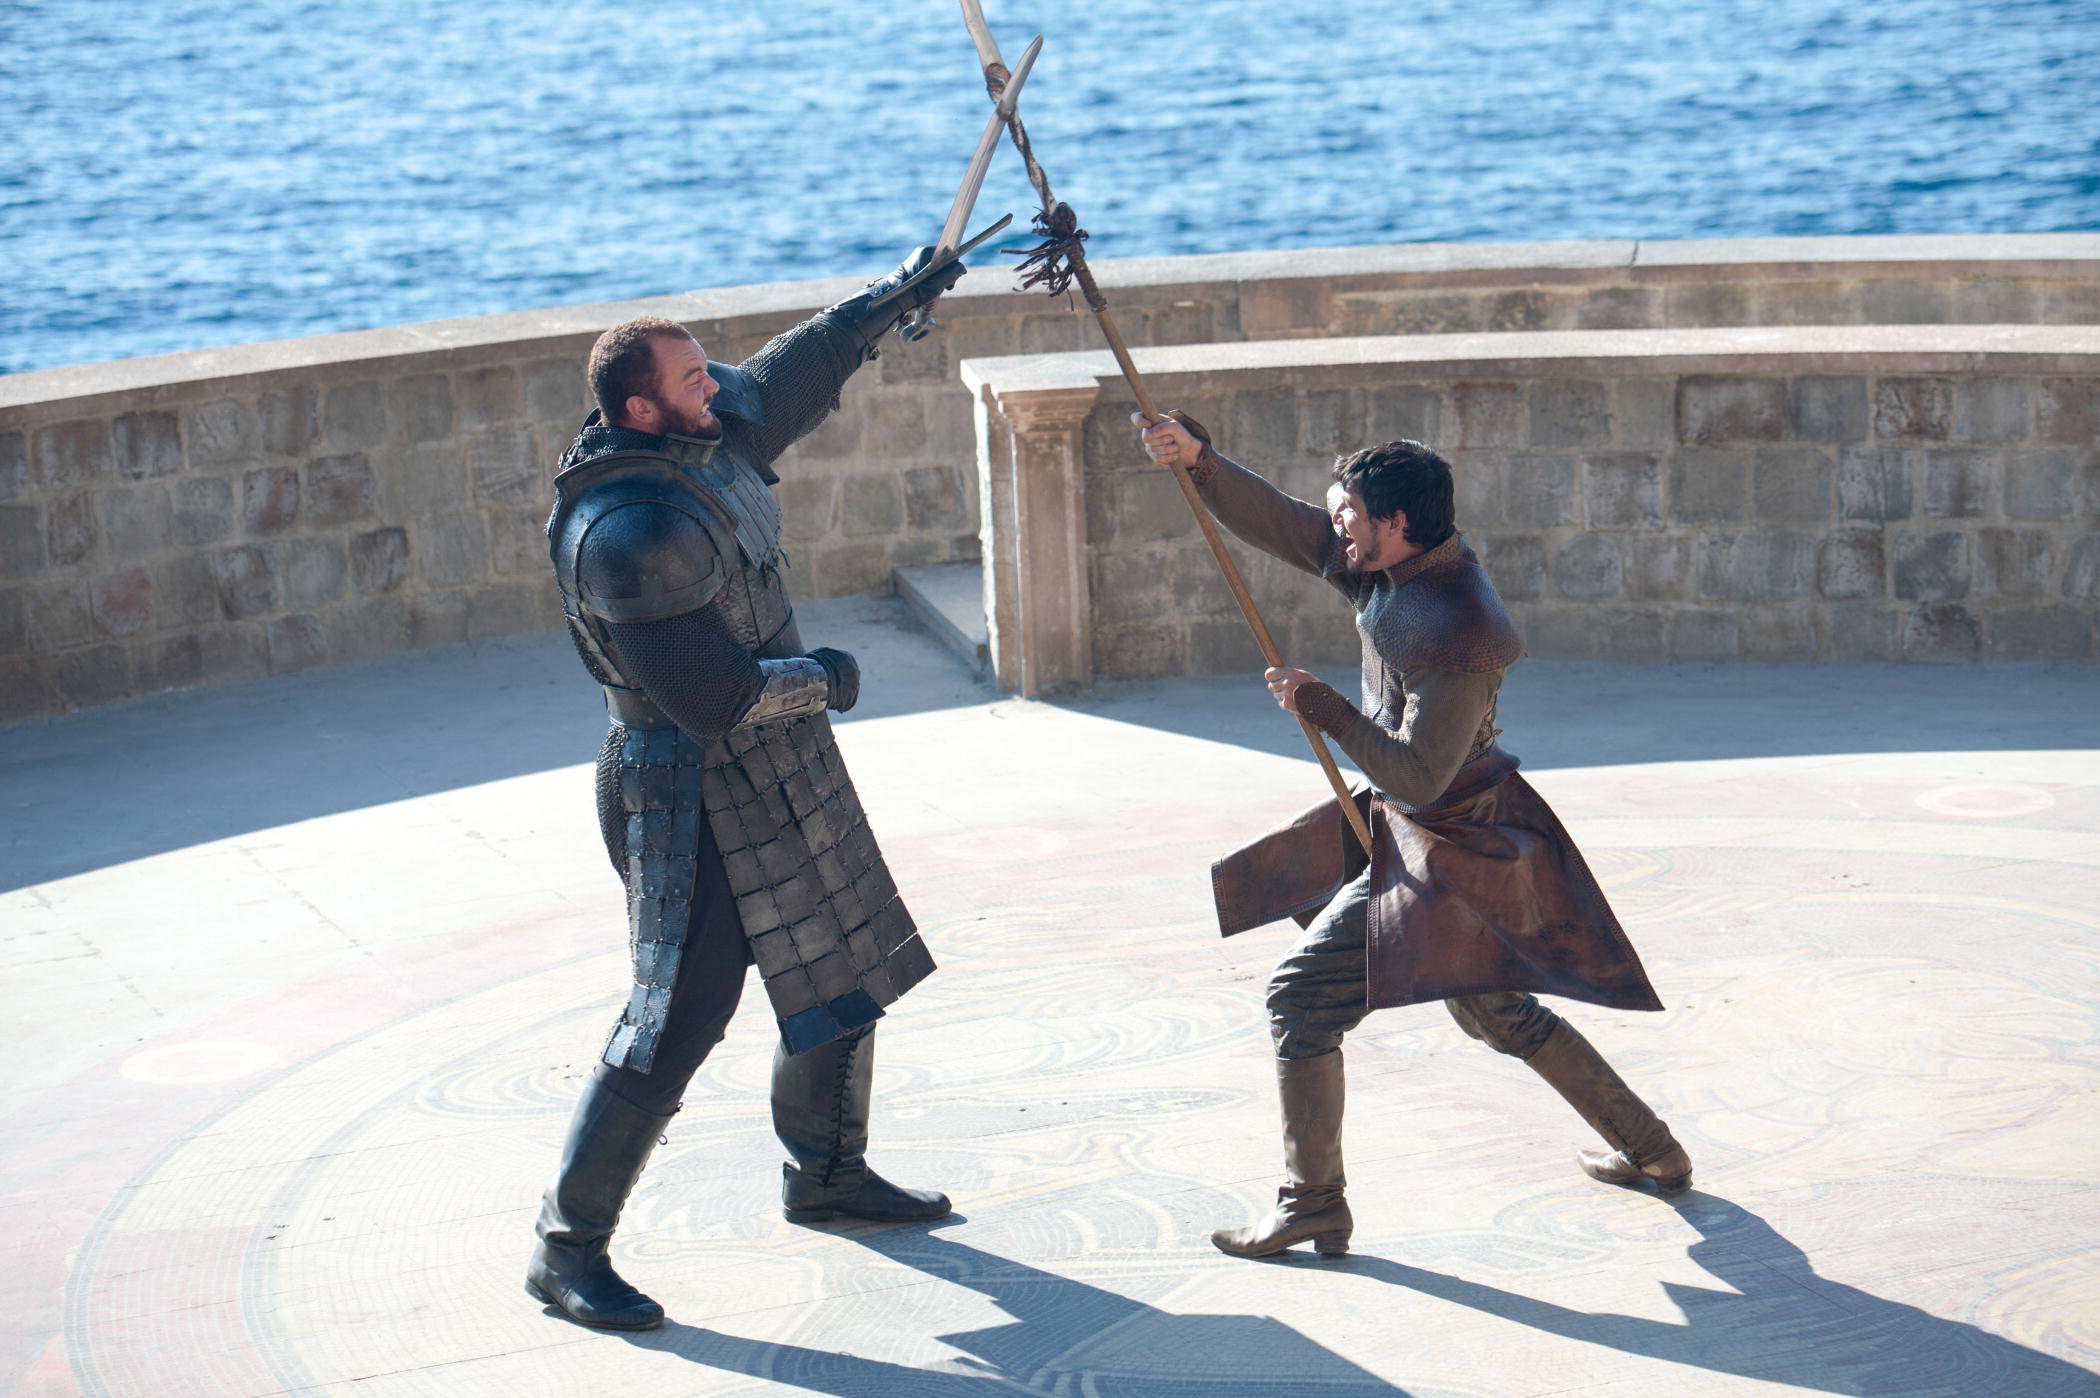 Game of Thrones - 04x08 - The Mountain and the Viper